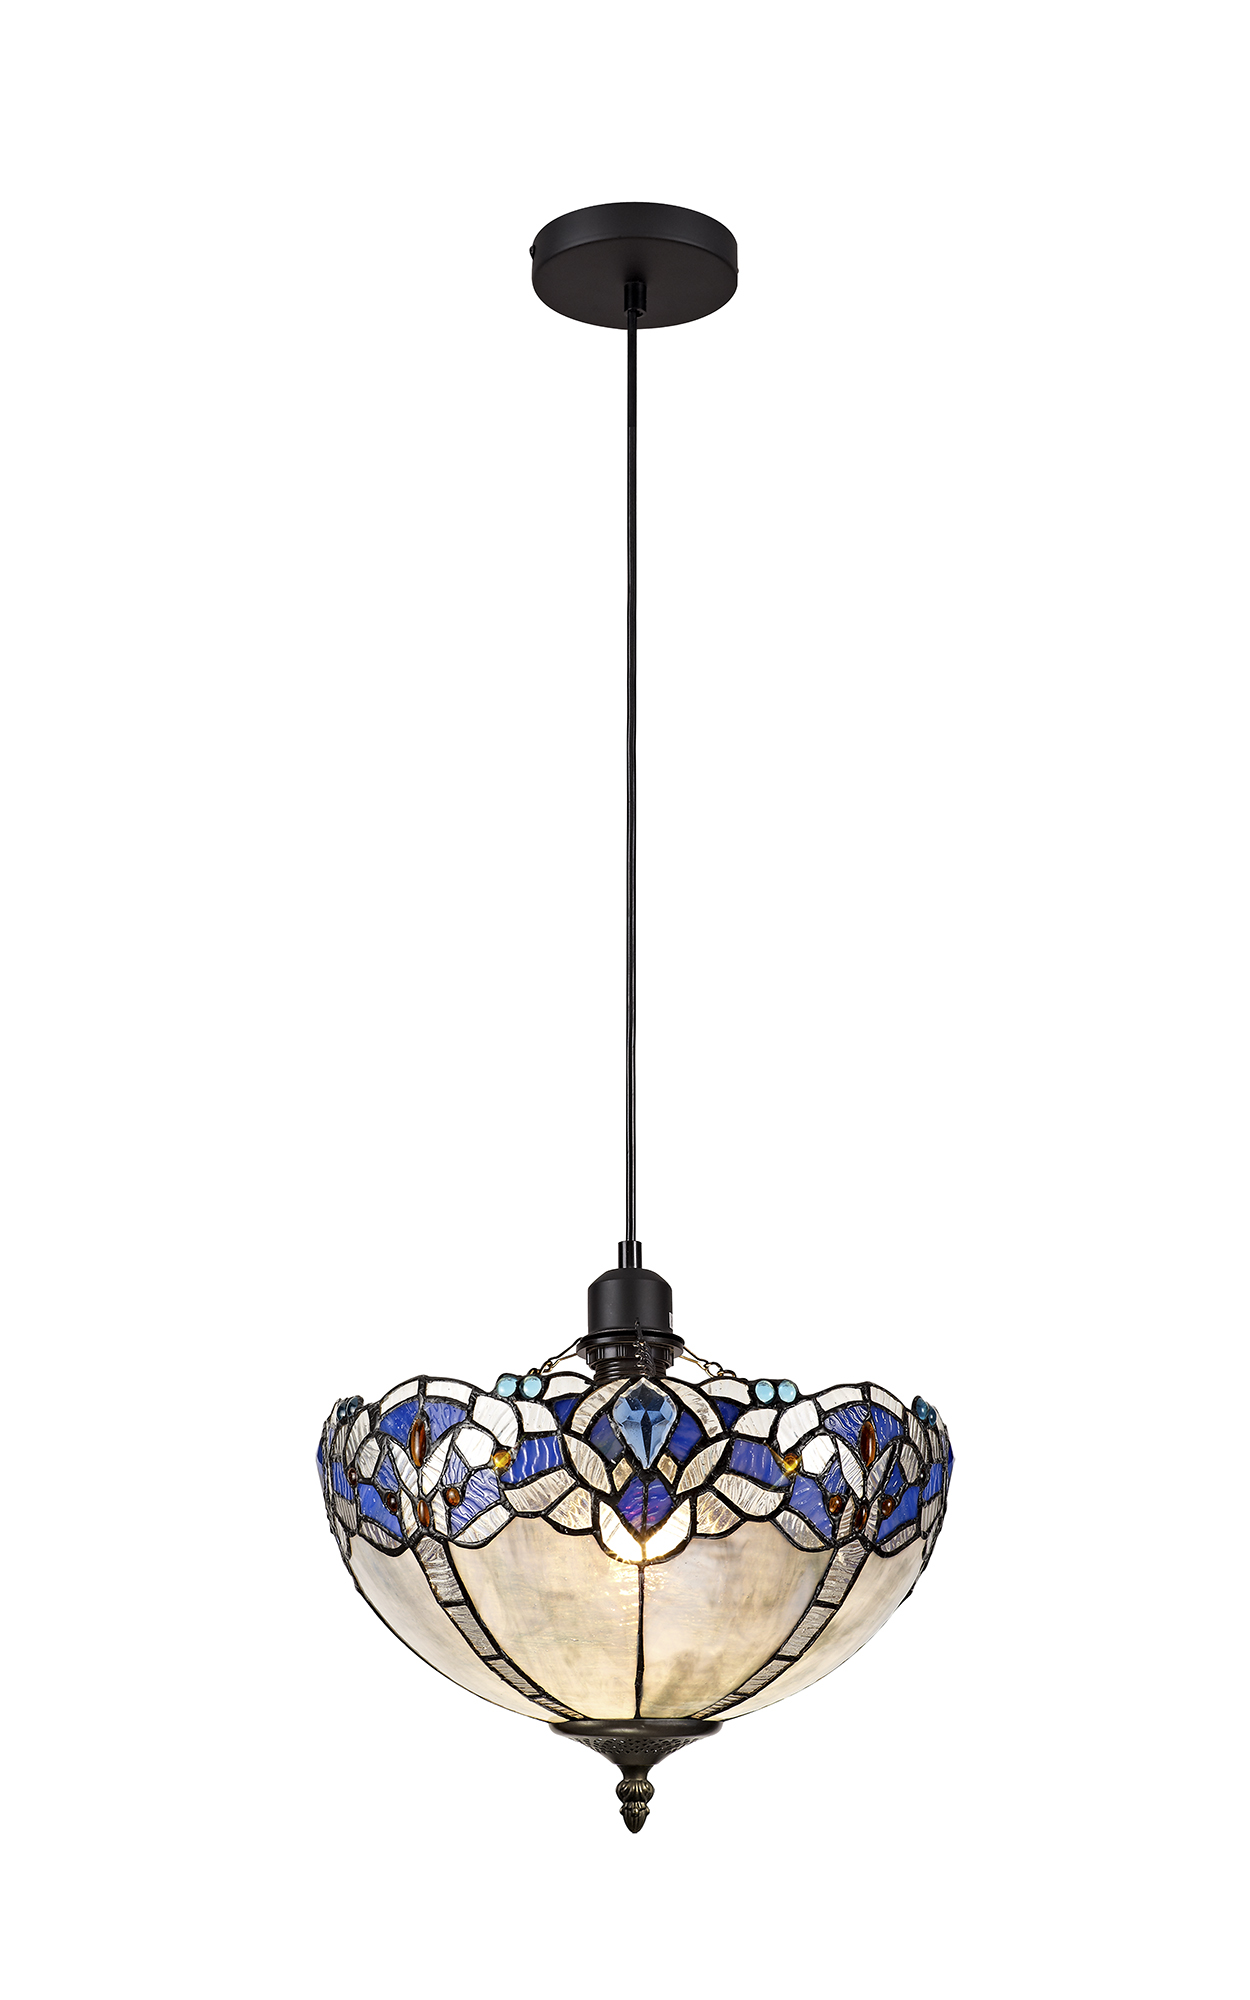 1 Light Uplighter Pendant E27 With 30cm Tiffany Shade, Blue/Clear Crystal/Black